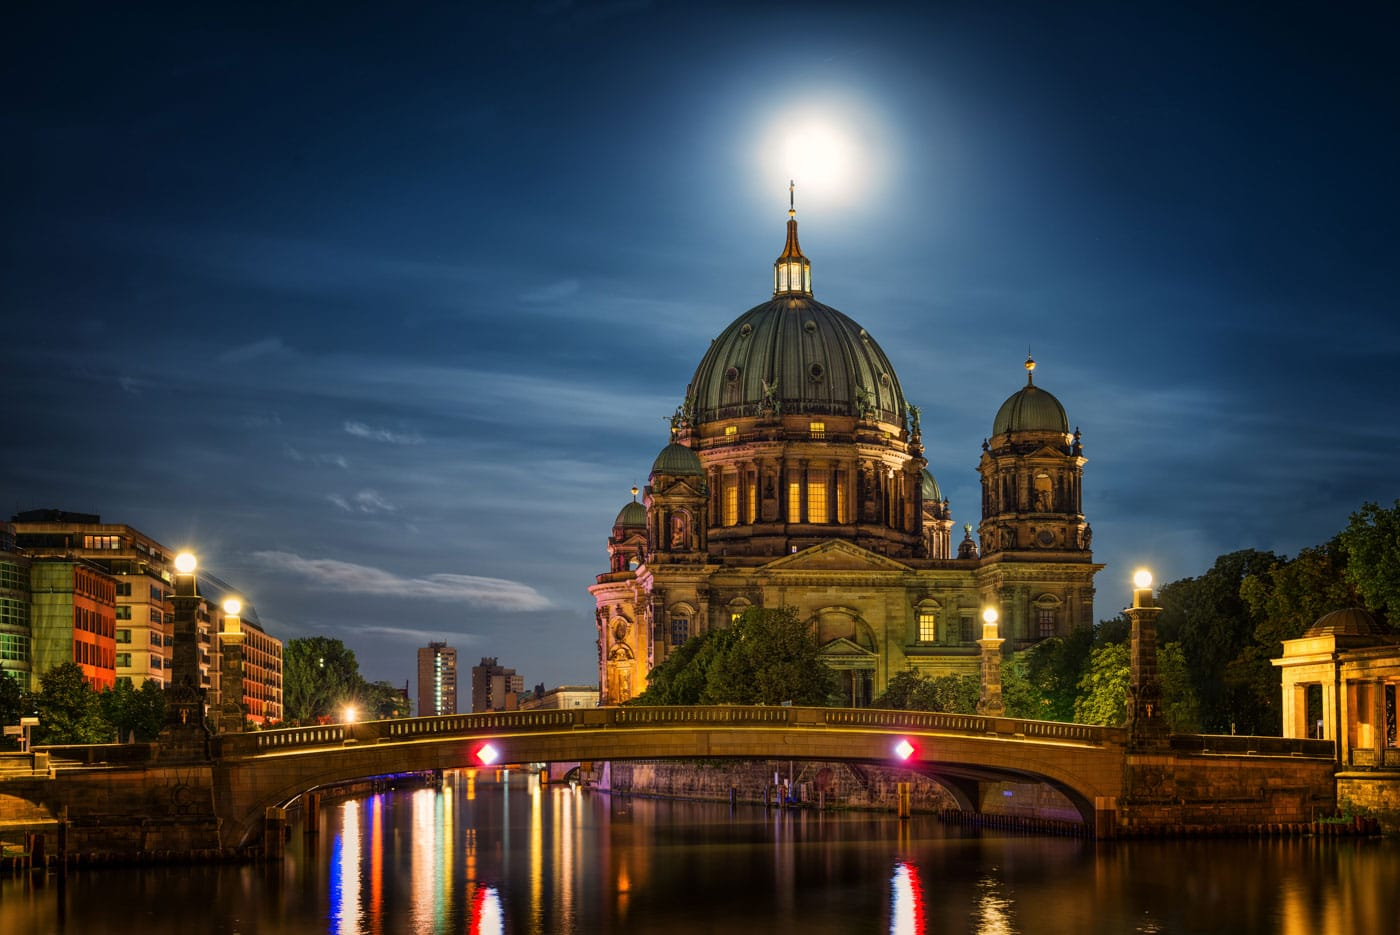 Berlin Cathedral at Night under the Moonlight